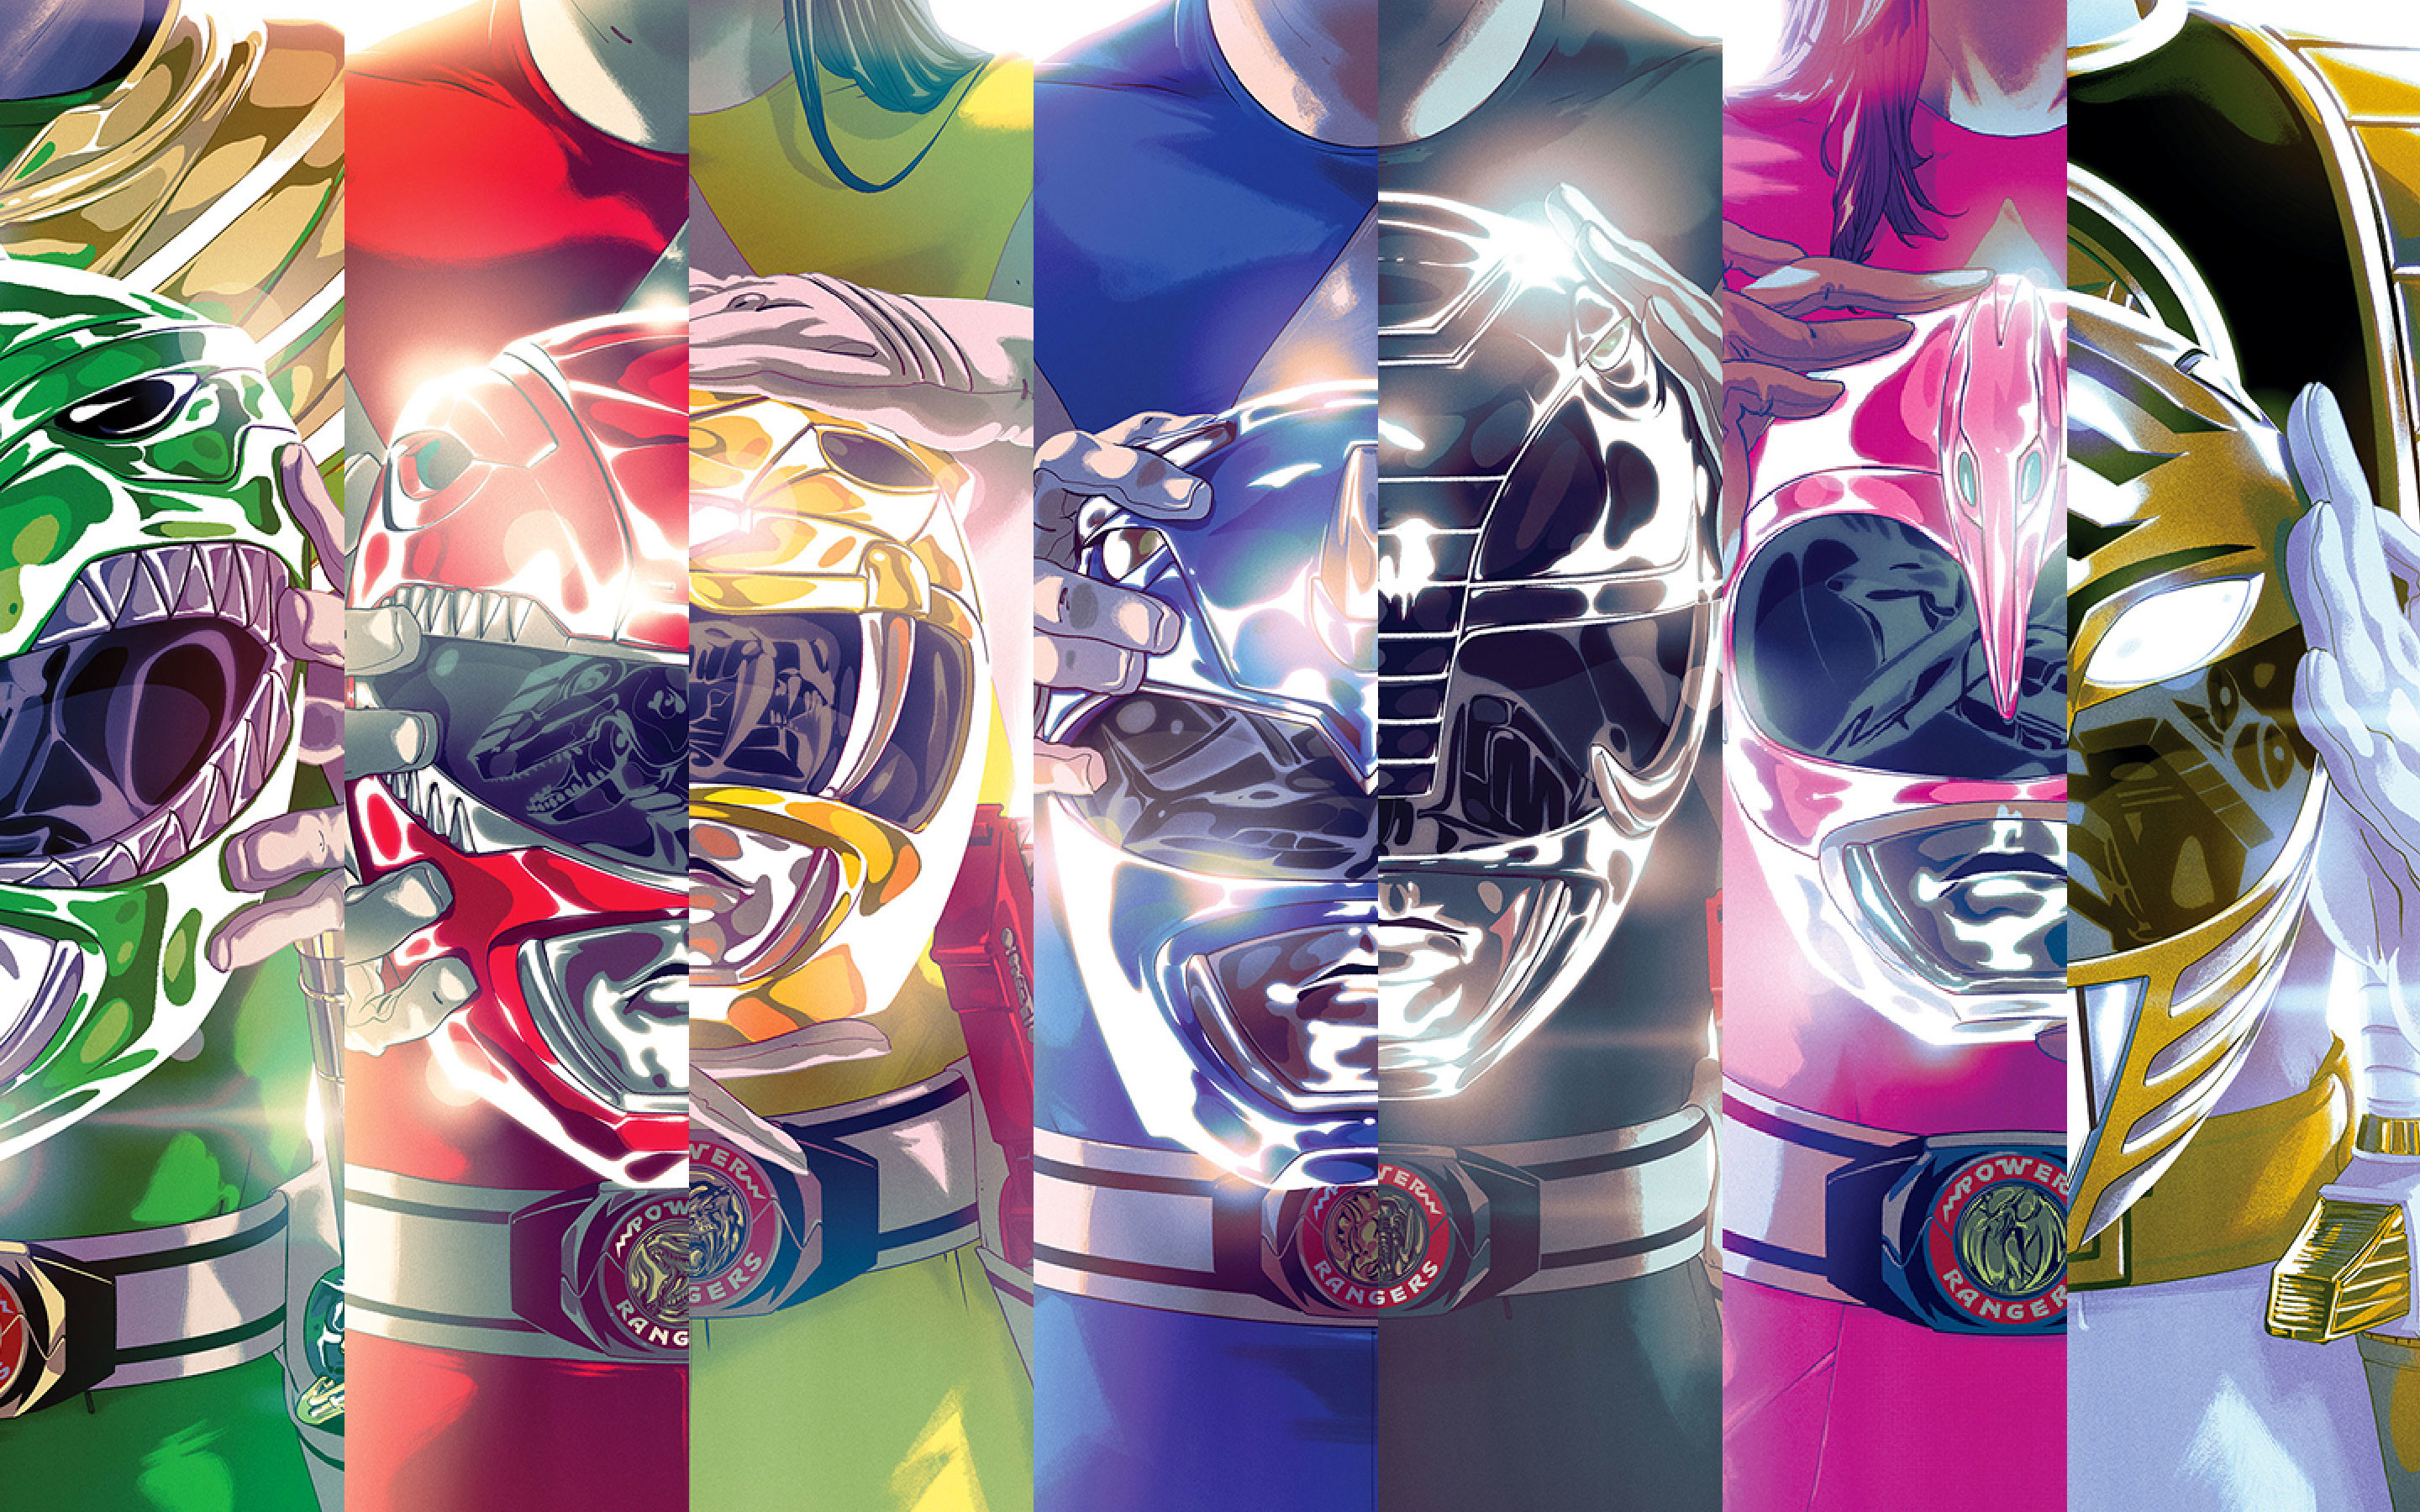 Res: 2880x1800, ZYV.755 Mighty Morphin Power Rangers Backgrounds - M.F. Graphics